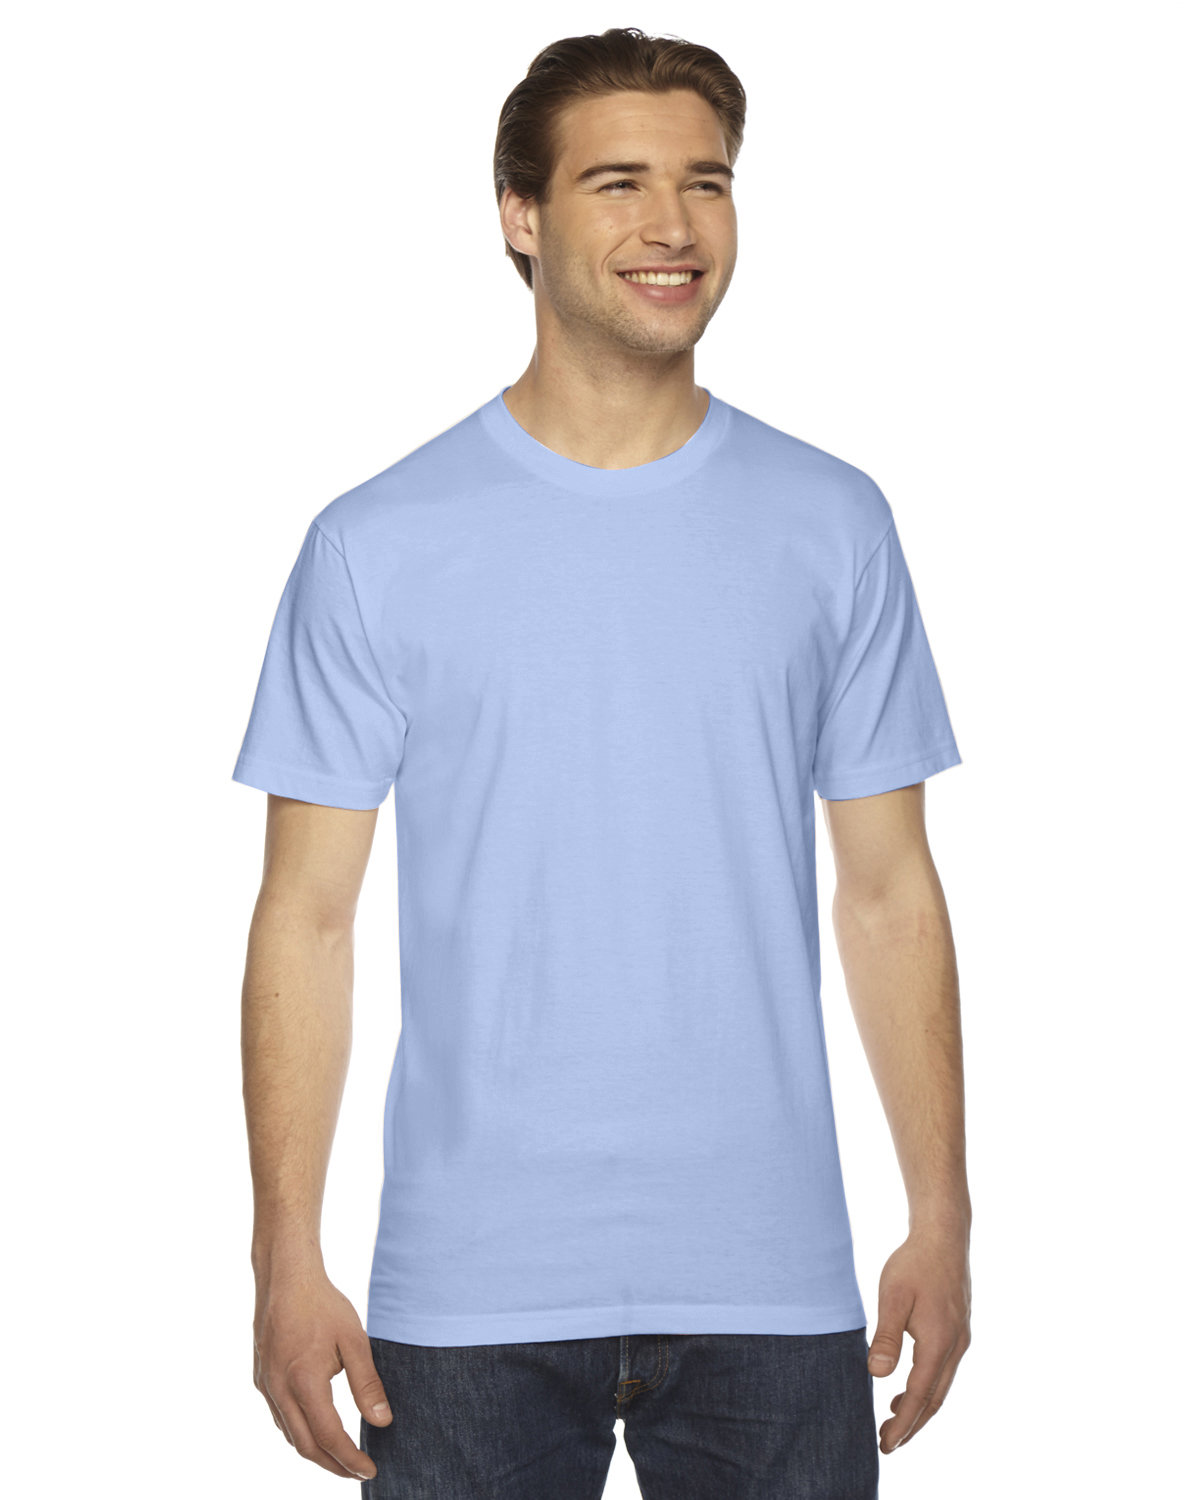 American Apparel Unisex Fine Jersey USA Made T-Shirt BABY BLUE